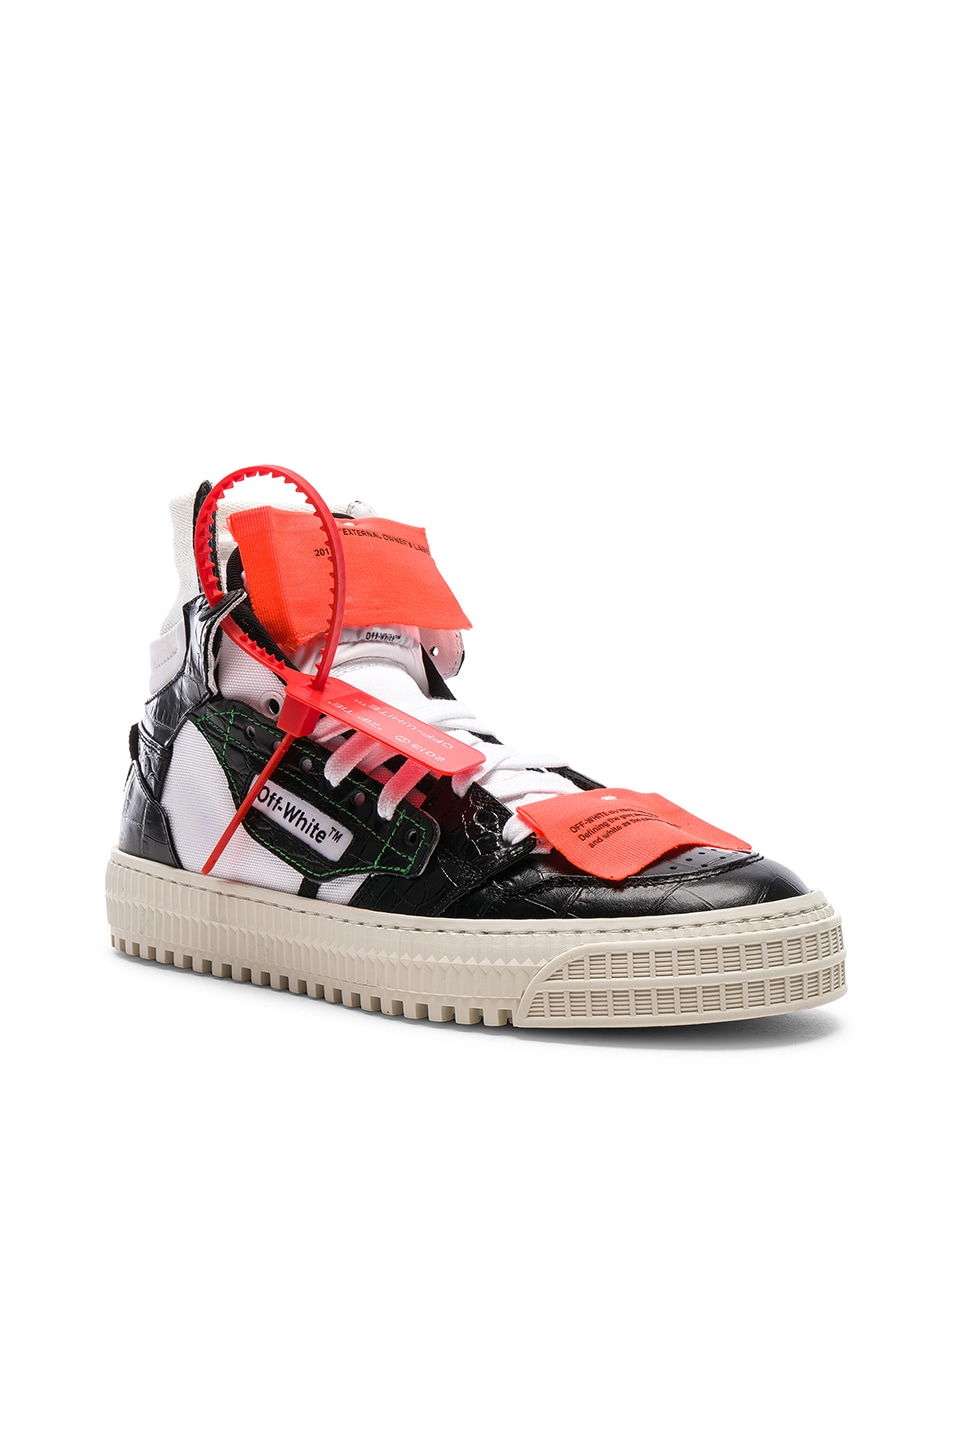 Image 2 of OFF-WHITE Low 3.0 Sneakers in Black